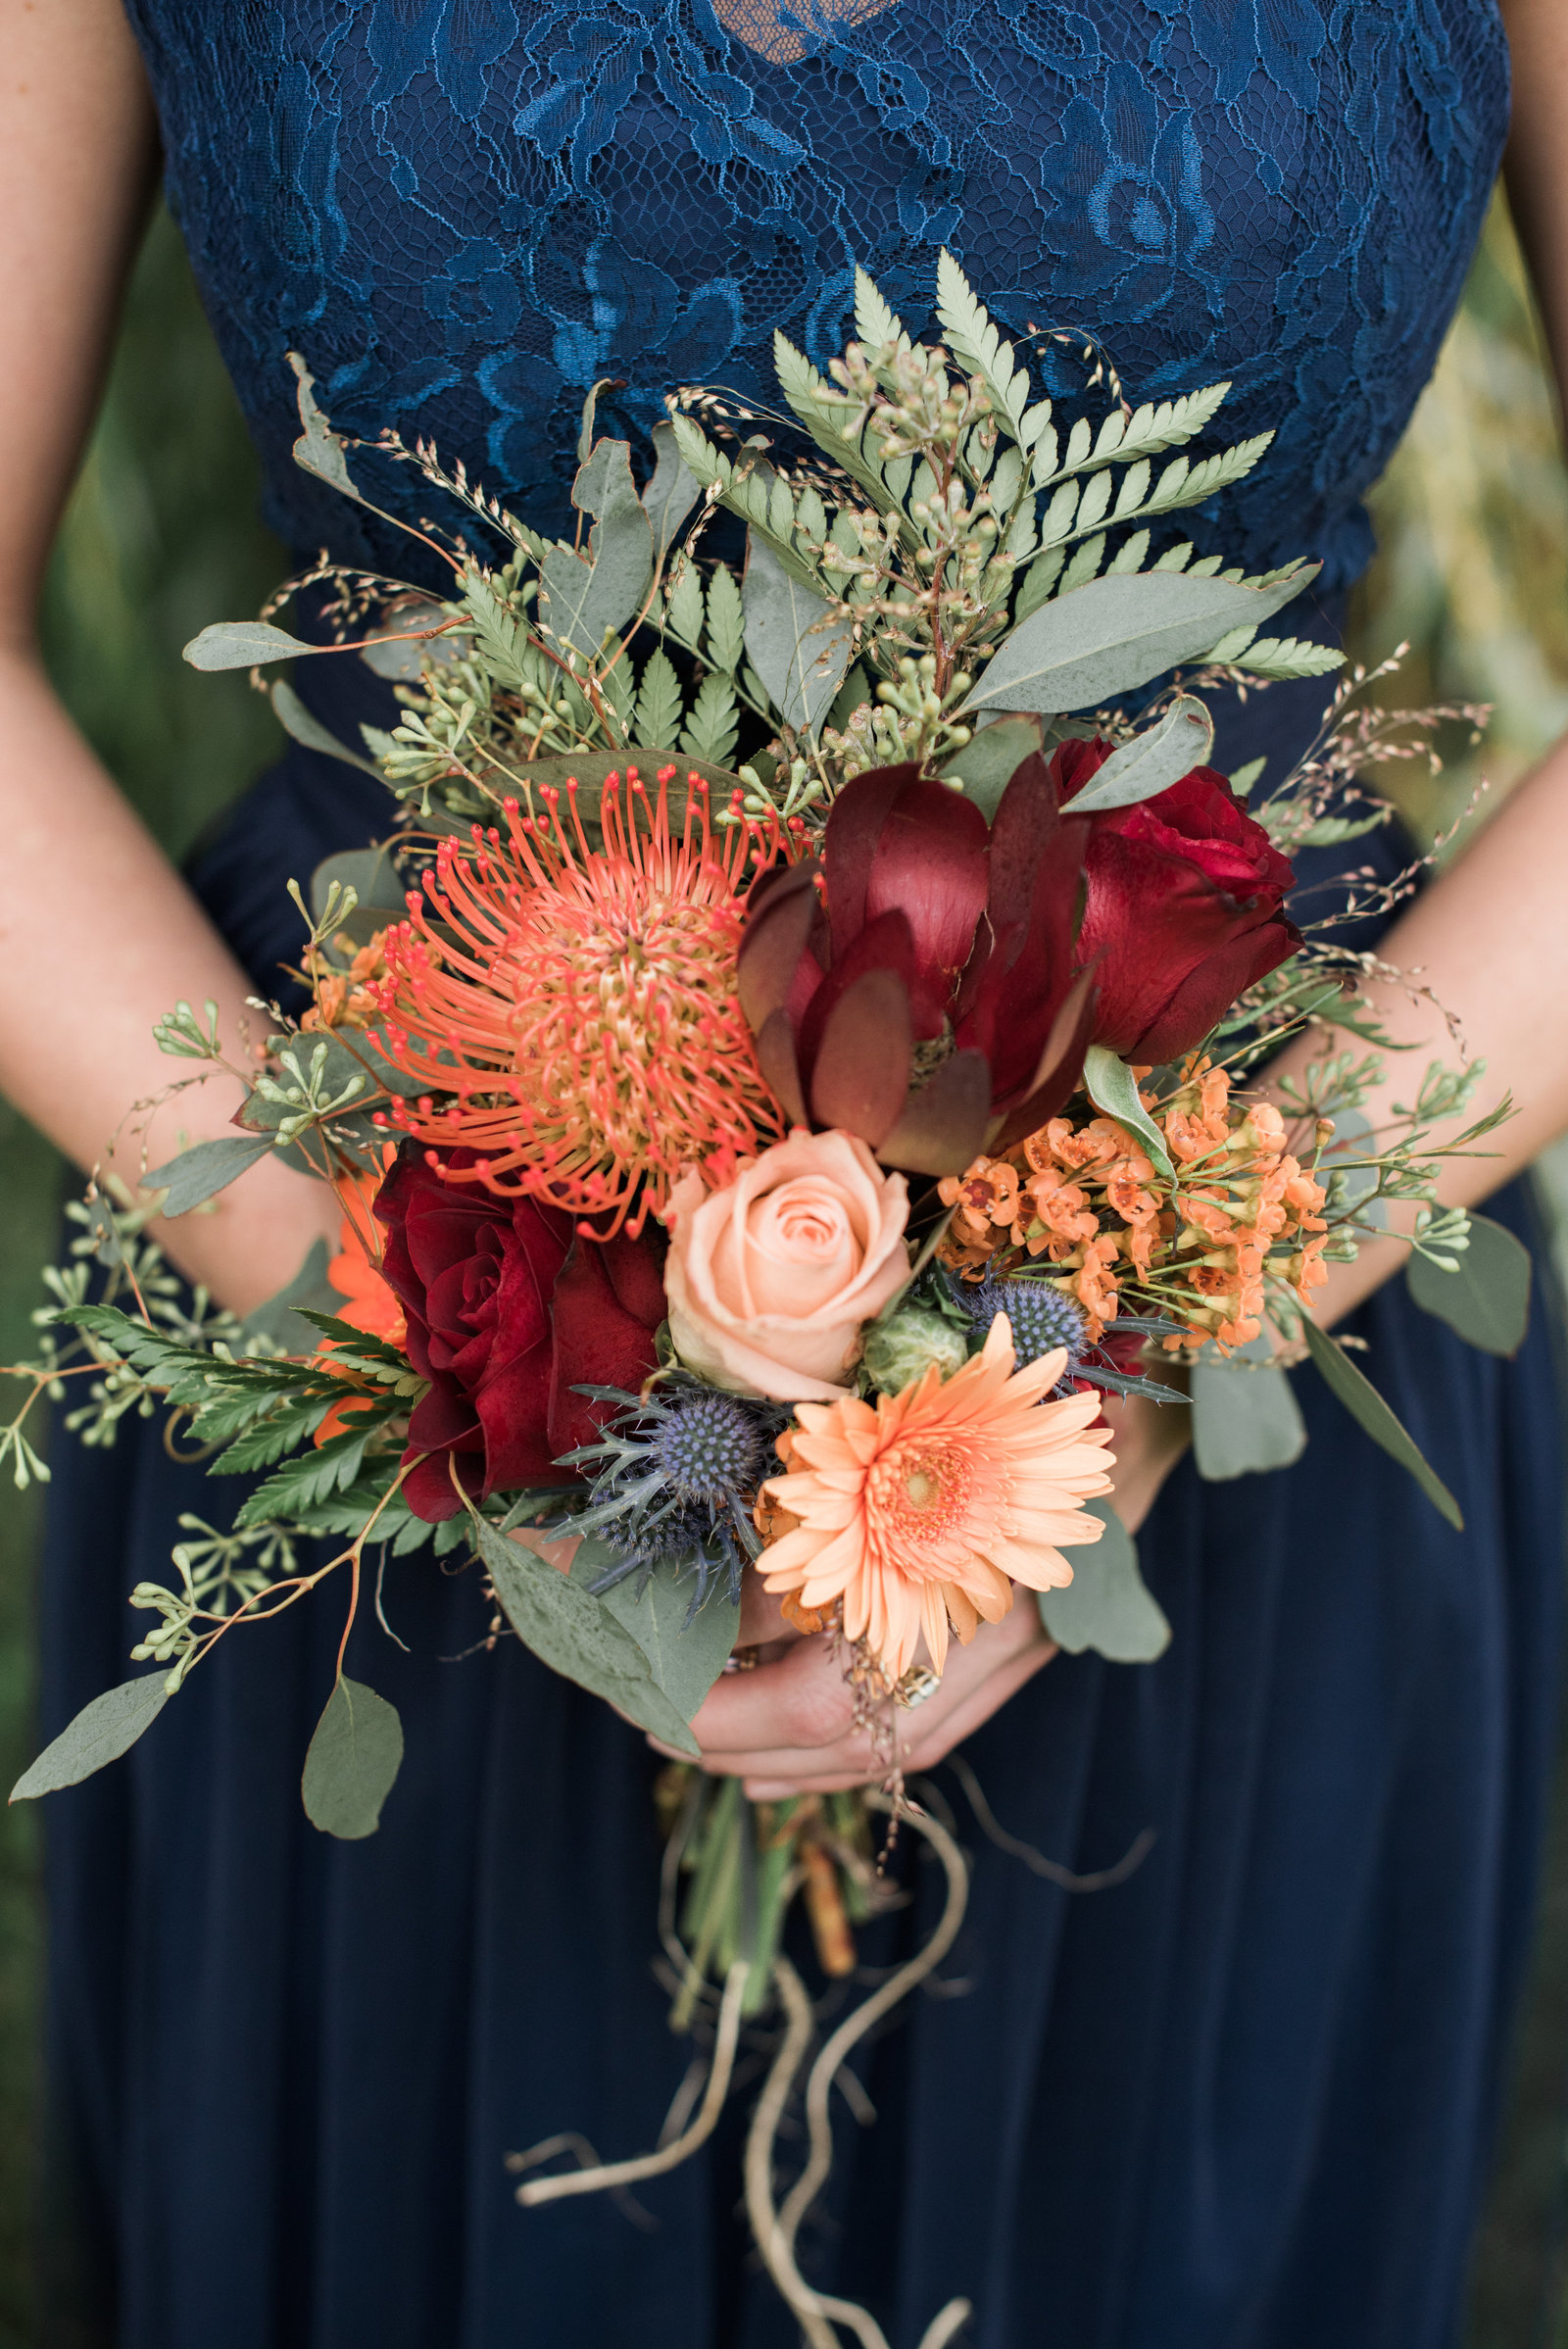 Fall florals at quincy cellars wedding in fall